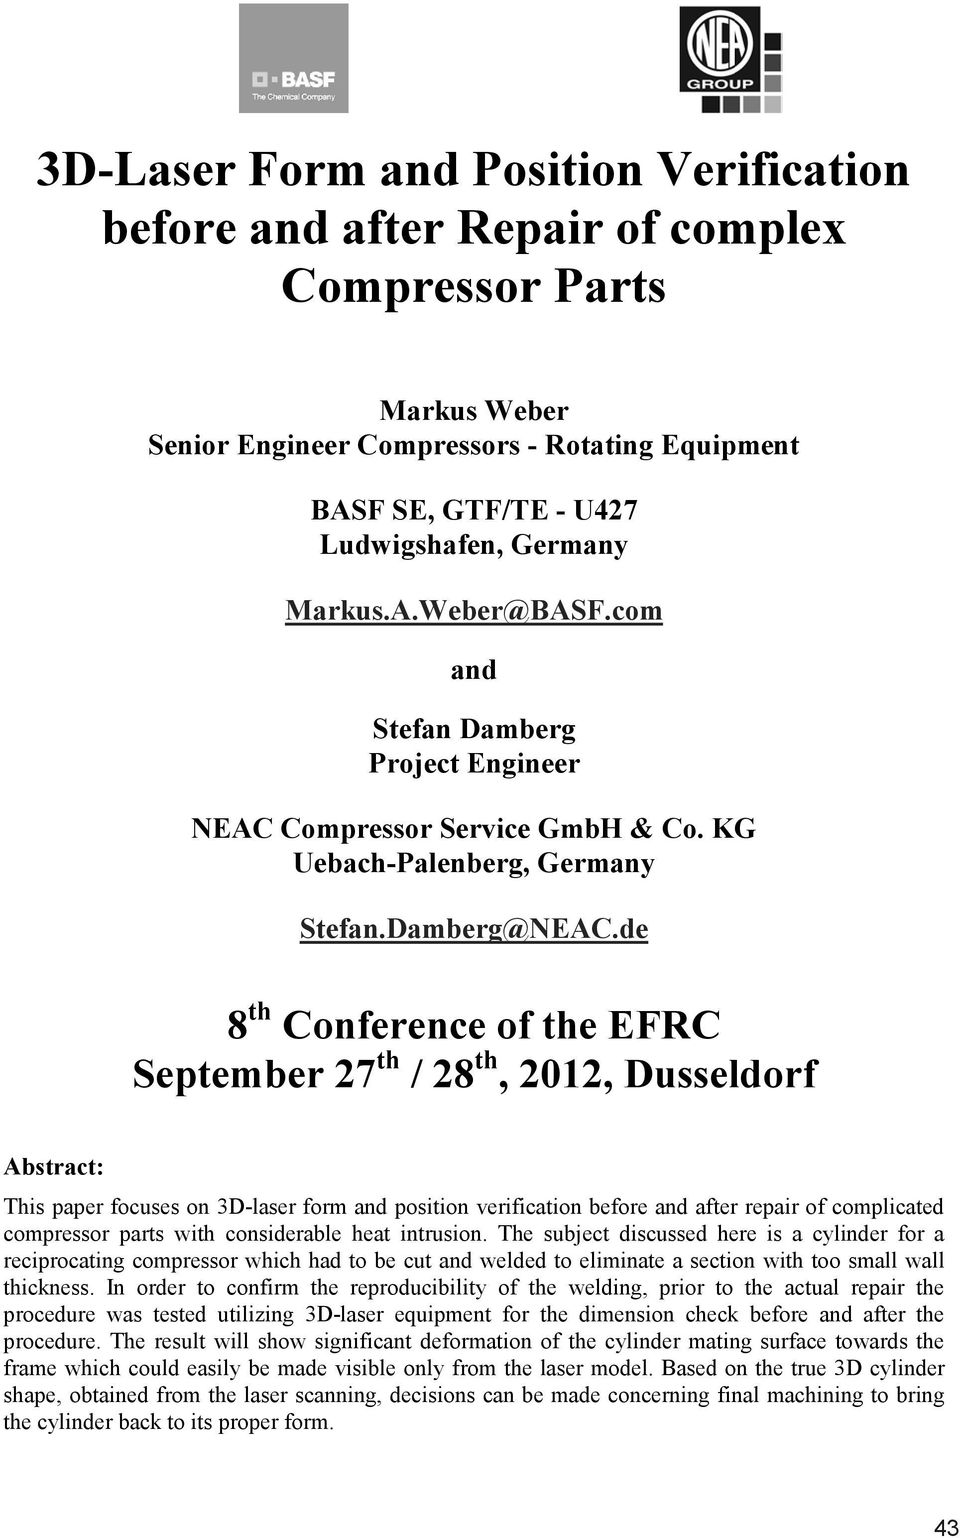 de September 27th / 28th, 2012, Dusseldorf This paper focuses on 3D-laser form and position verification before and after repair of complicated compressor parts with considerable heat intrusion.